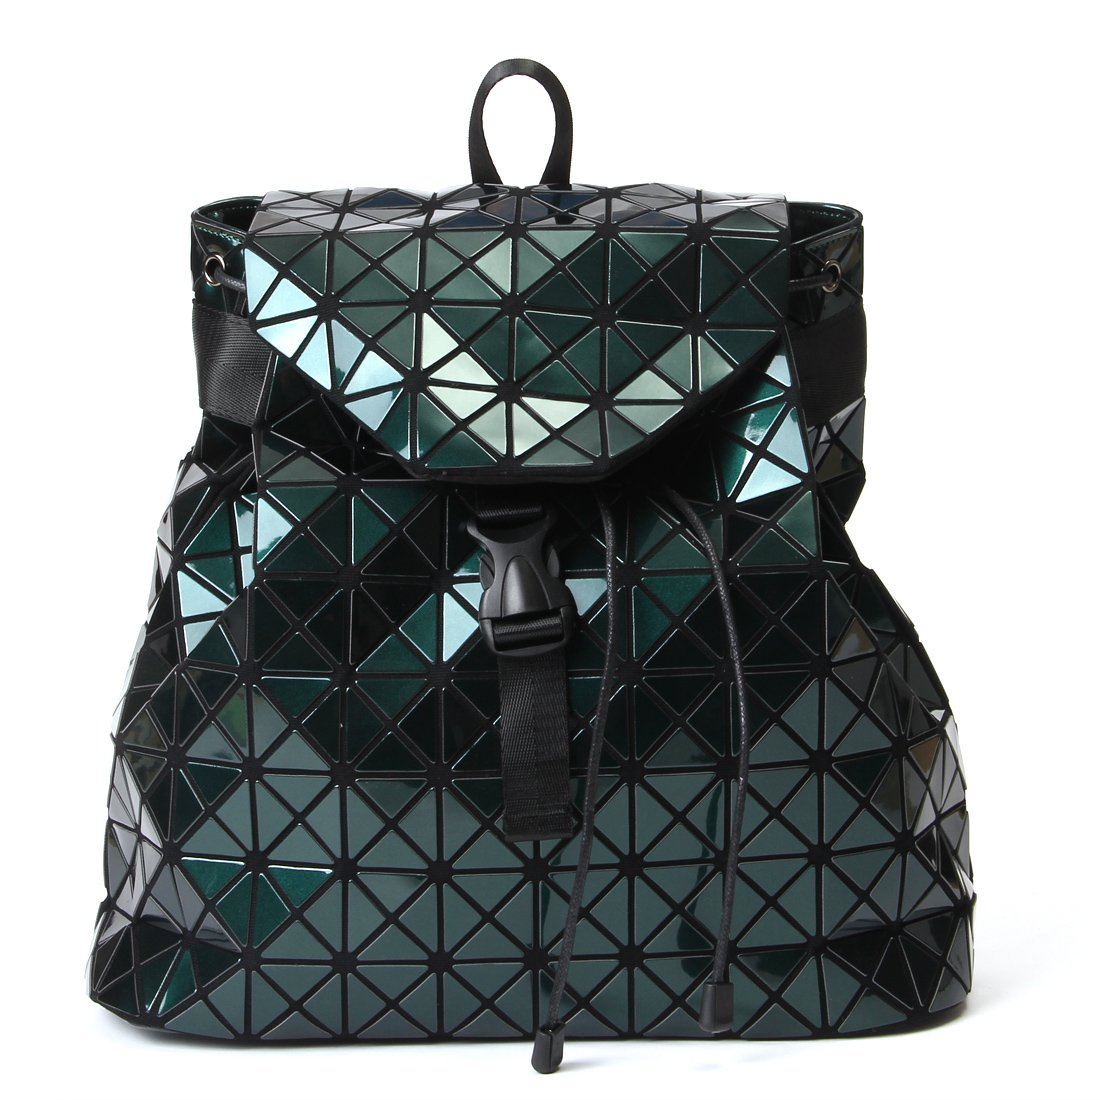 Harlermoon Geometric Luminous Holographic Purses and Handbags Flash Reflactive Tote for Women … (geometric backpack green)